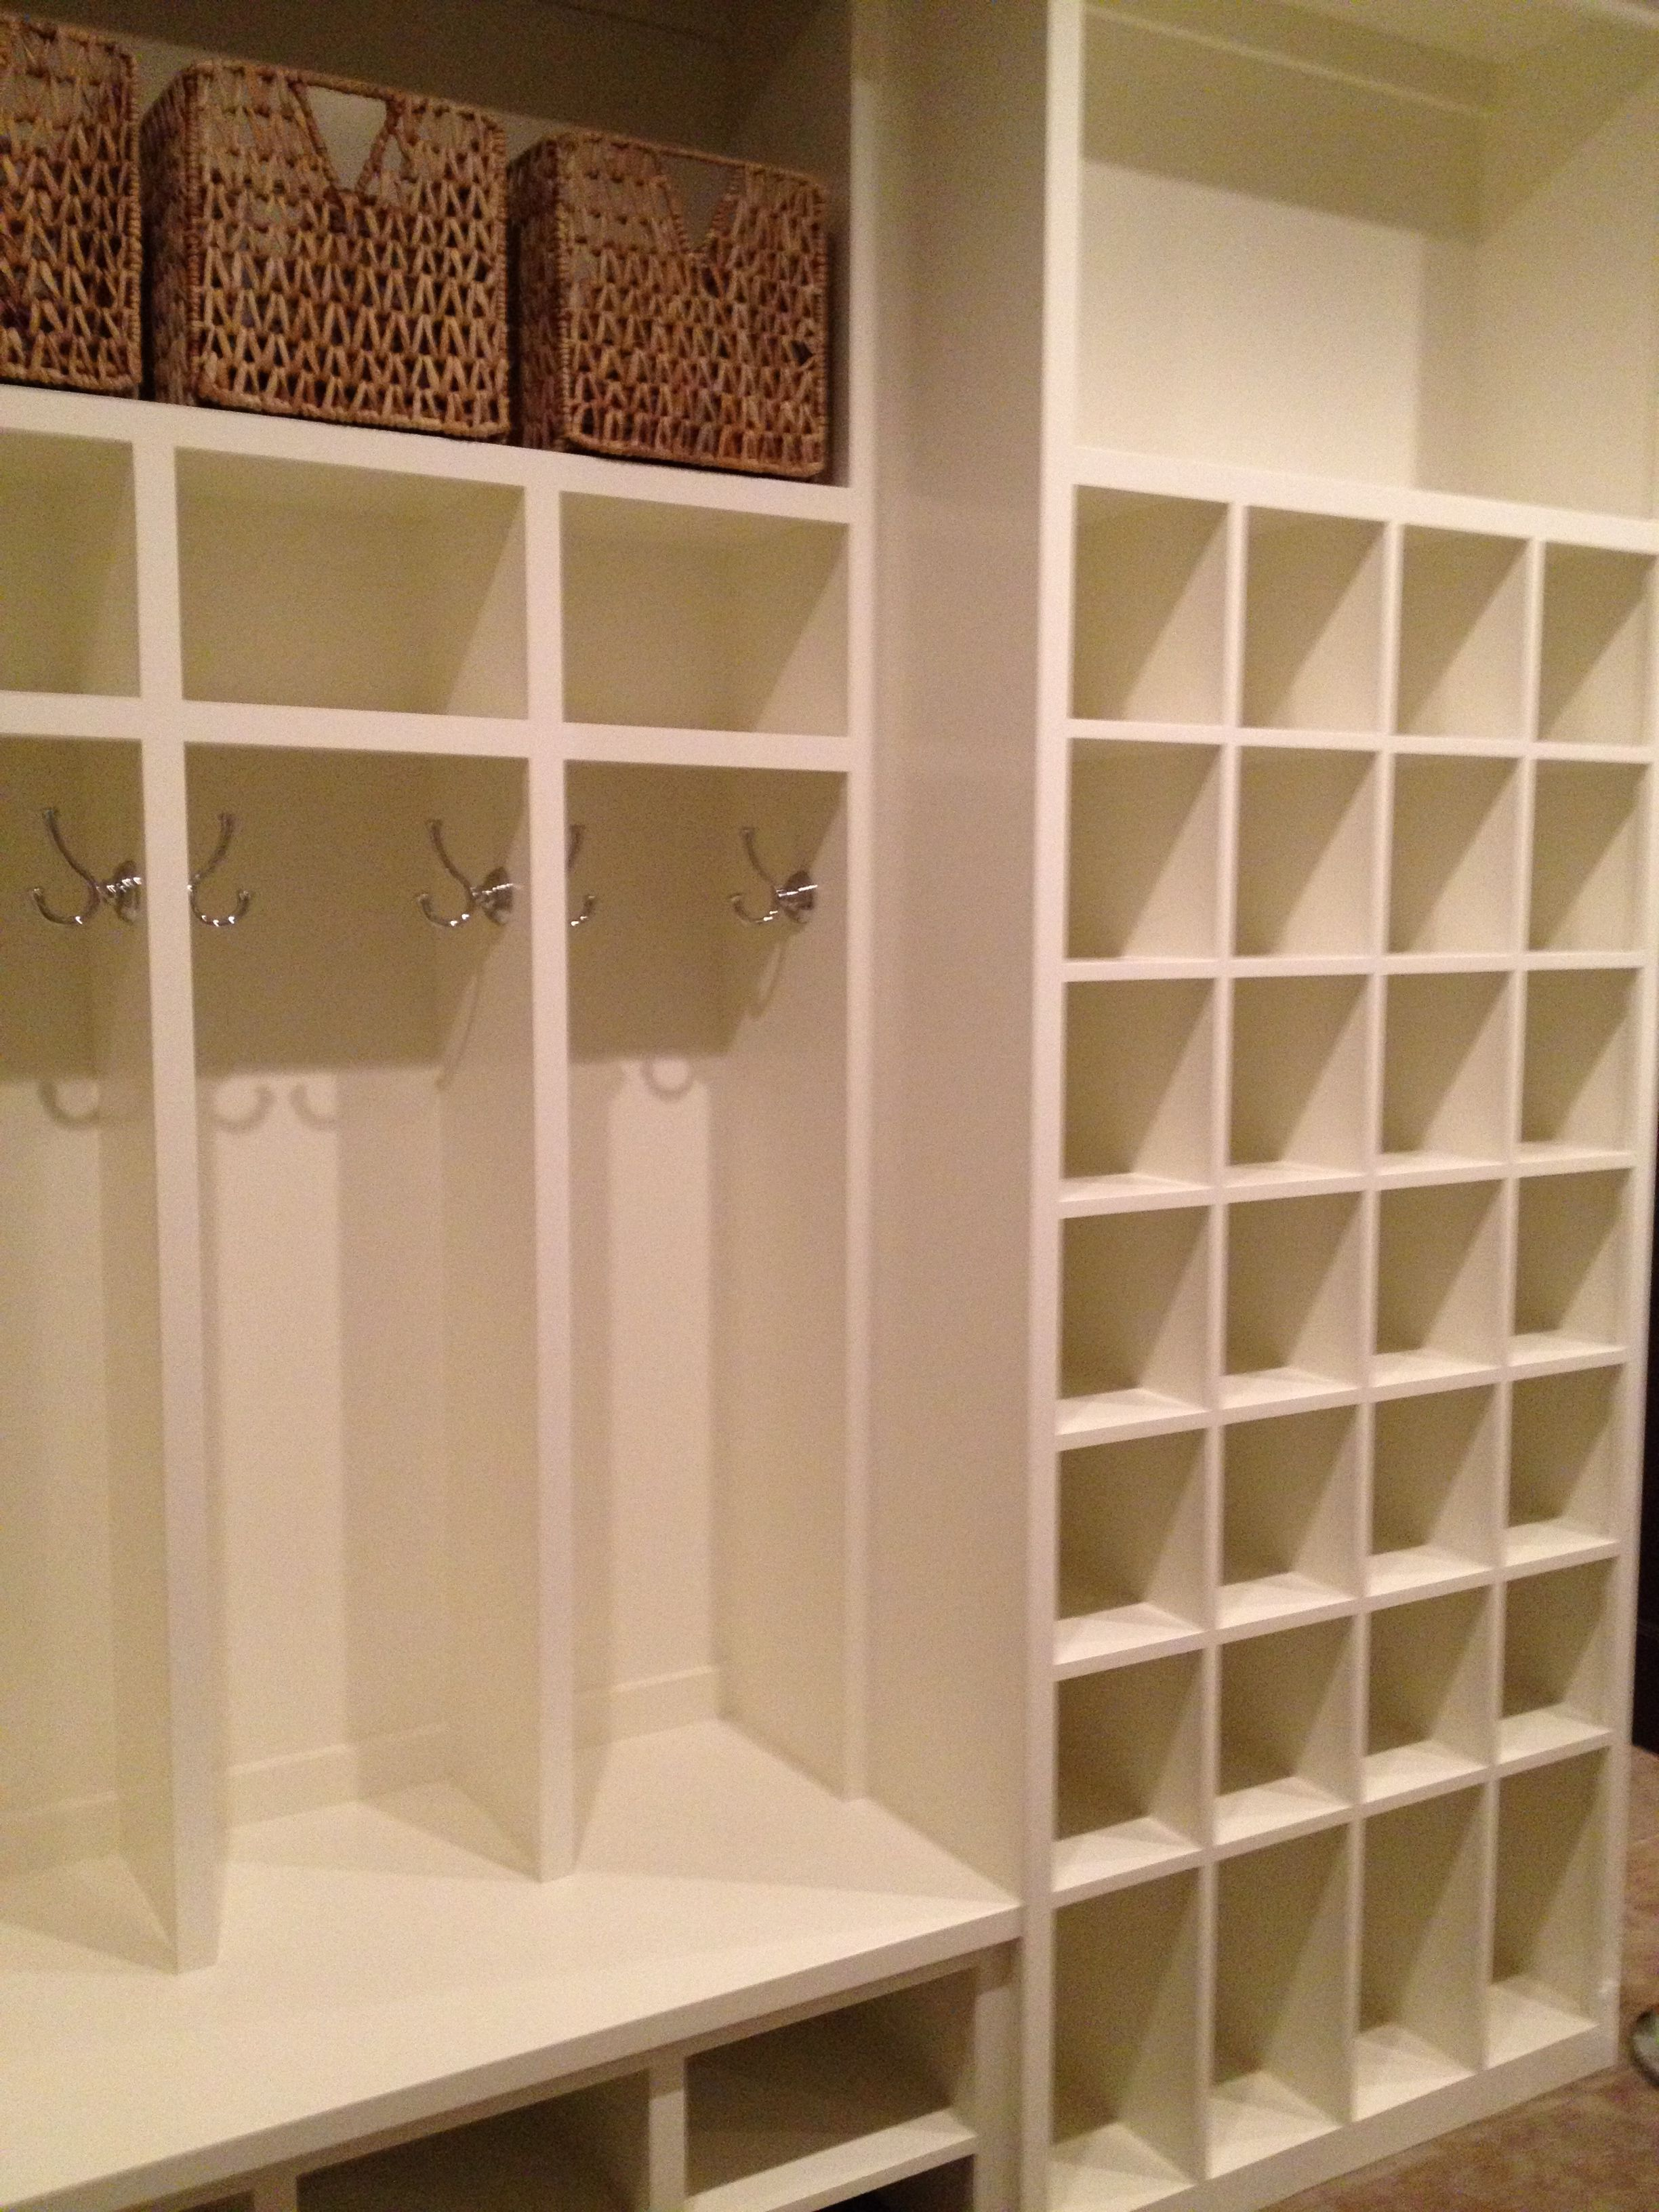 This Mud Room Has Open Cabinets A Lot Of Shoe Storage Area White Colour Is Making We Can See Vertical Horizontal Lines